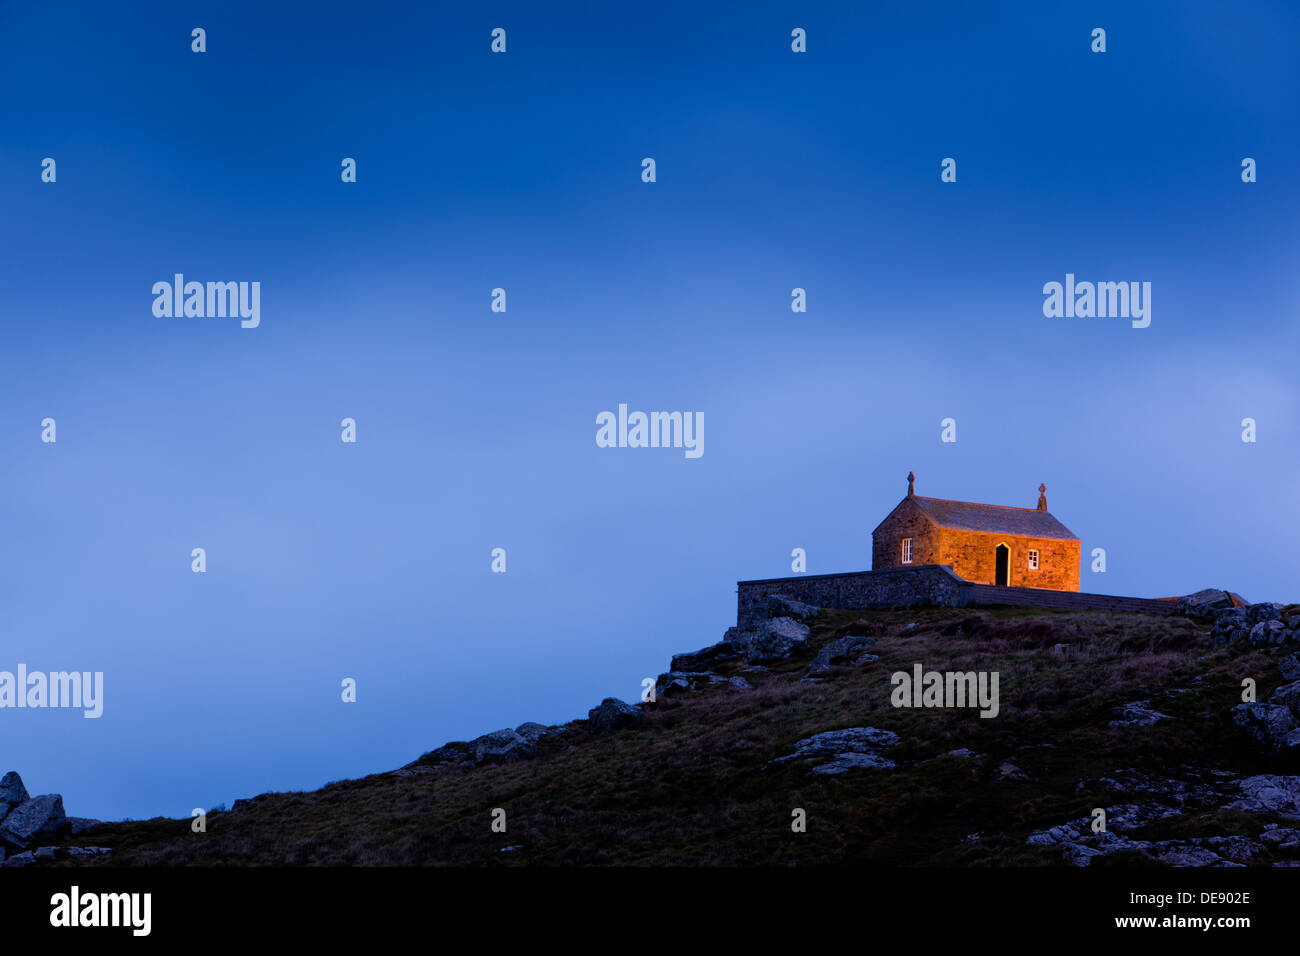 Old stone building on top of a rocky hill at night. - Stock Image